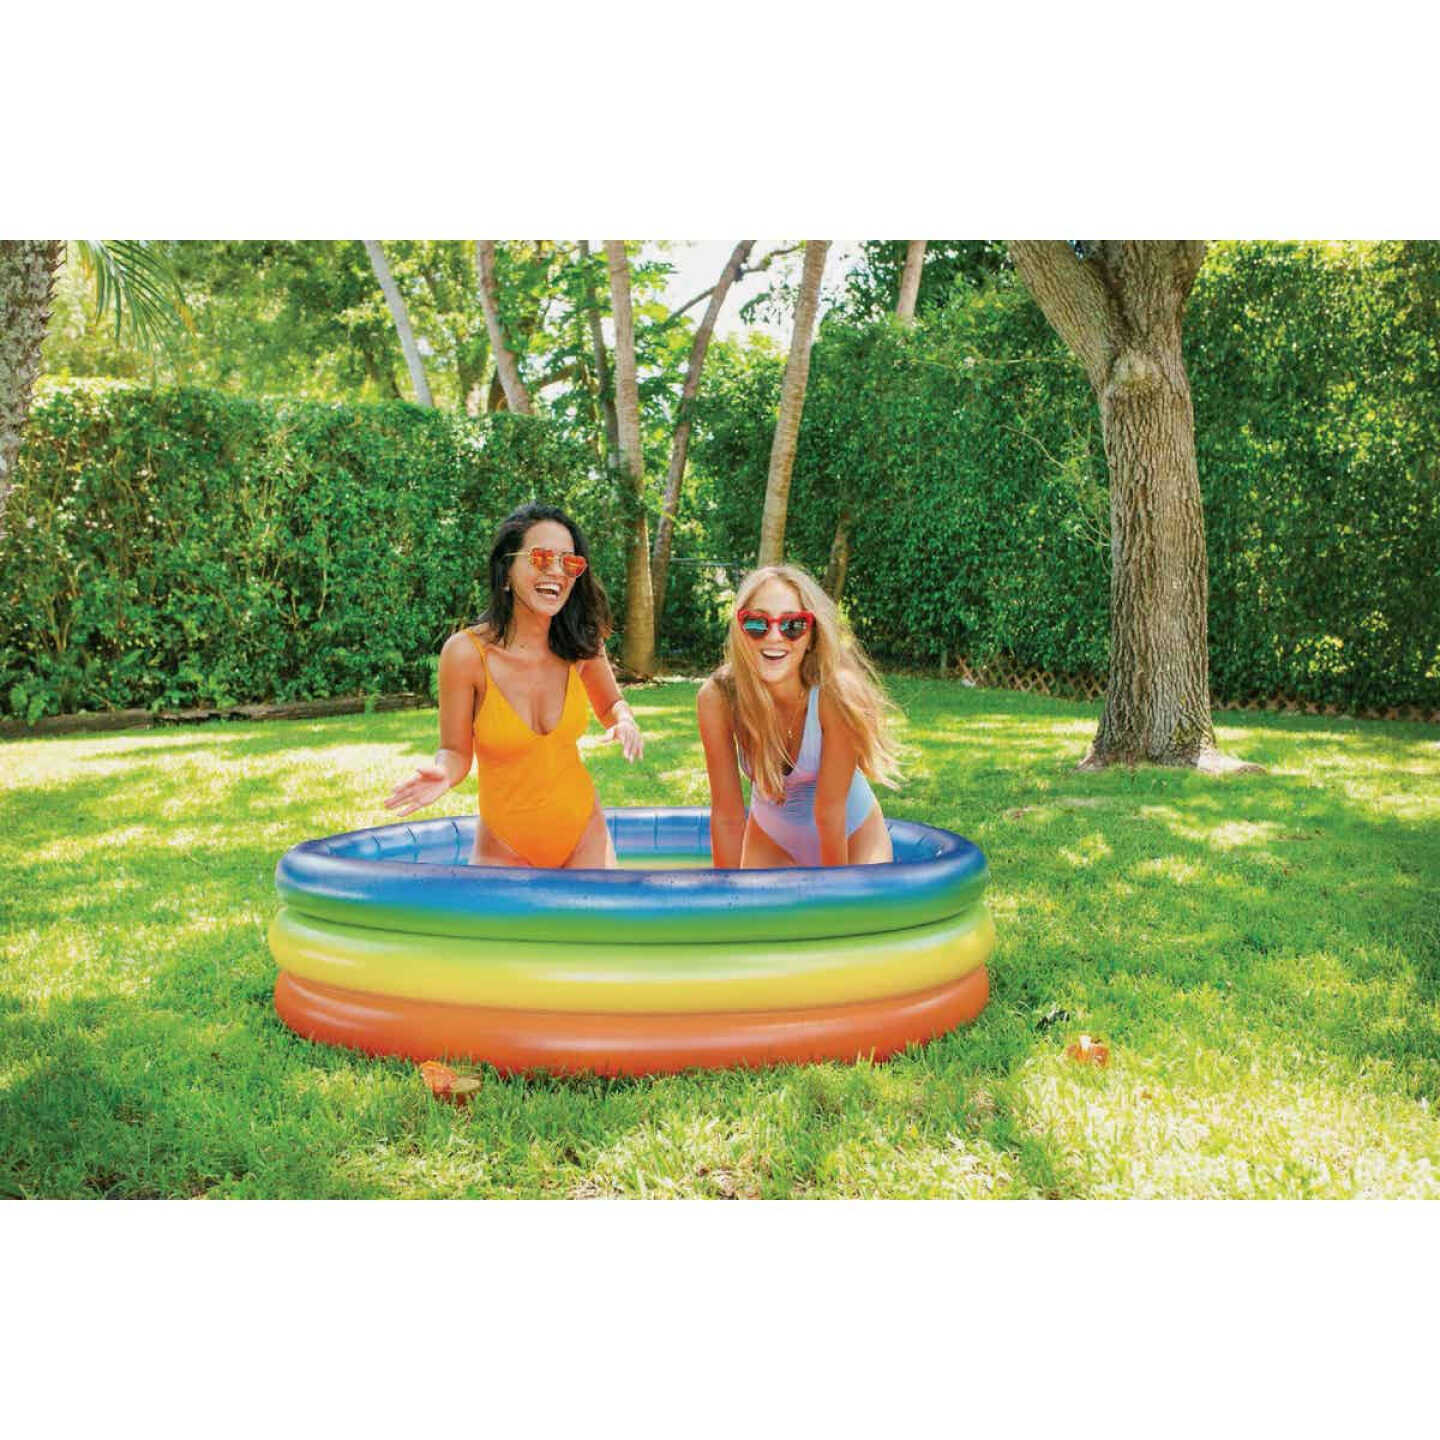 PoolCandy 15 In. D. x 60 In. Dia. Rainbow Haze Inflatable Sunning Pool Image 3